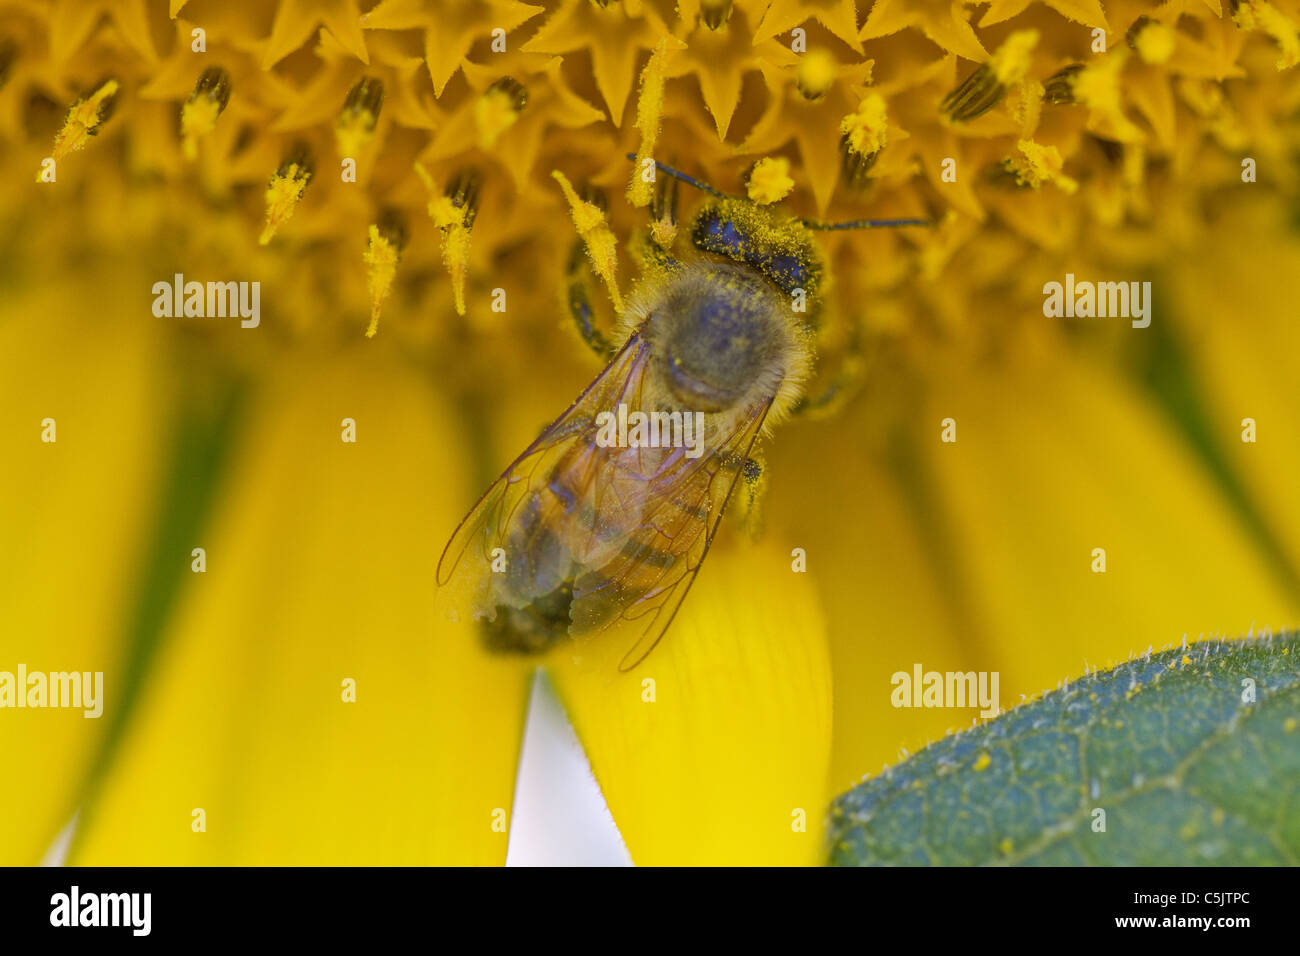 Closeup of a pollen-covered bee on a sunflower in Dixon, California. - Stock Image